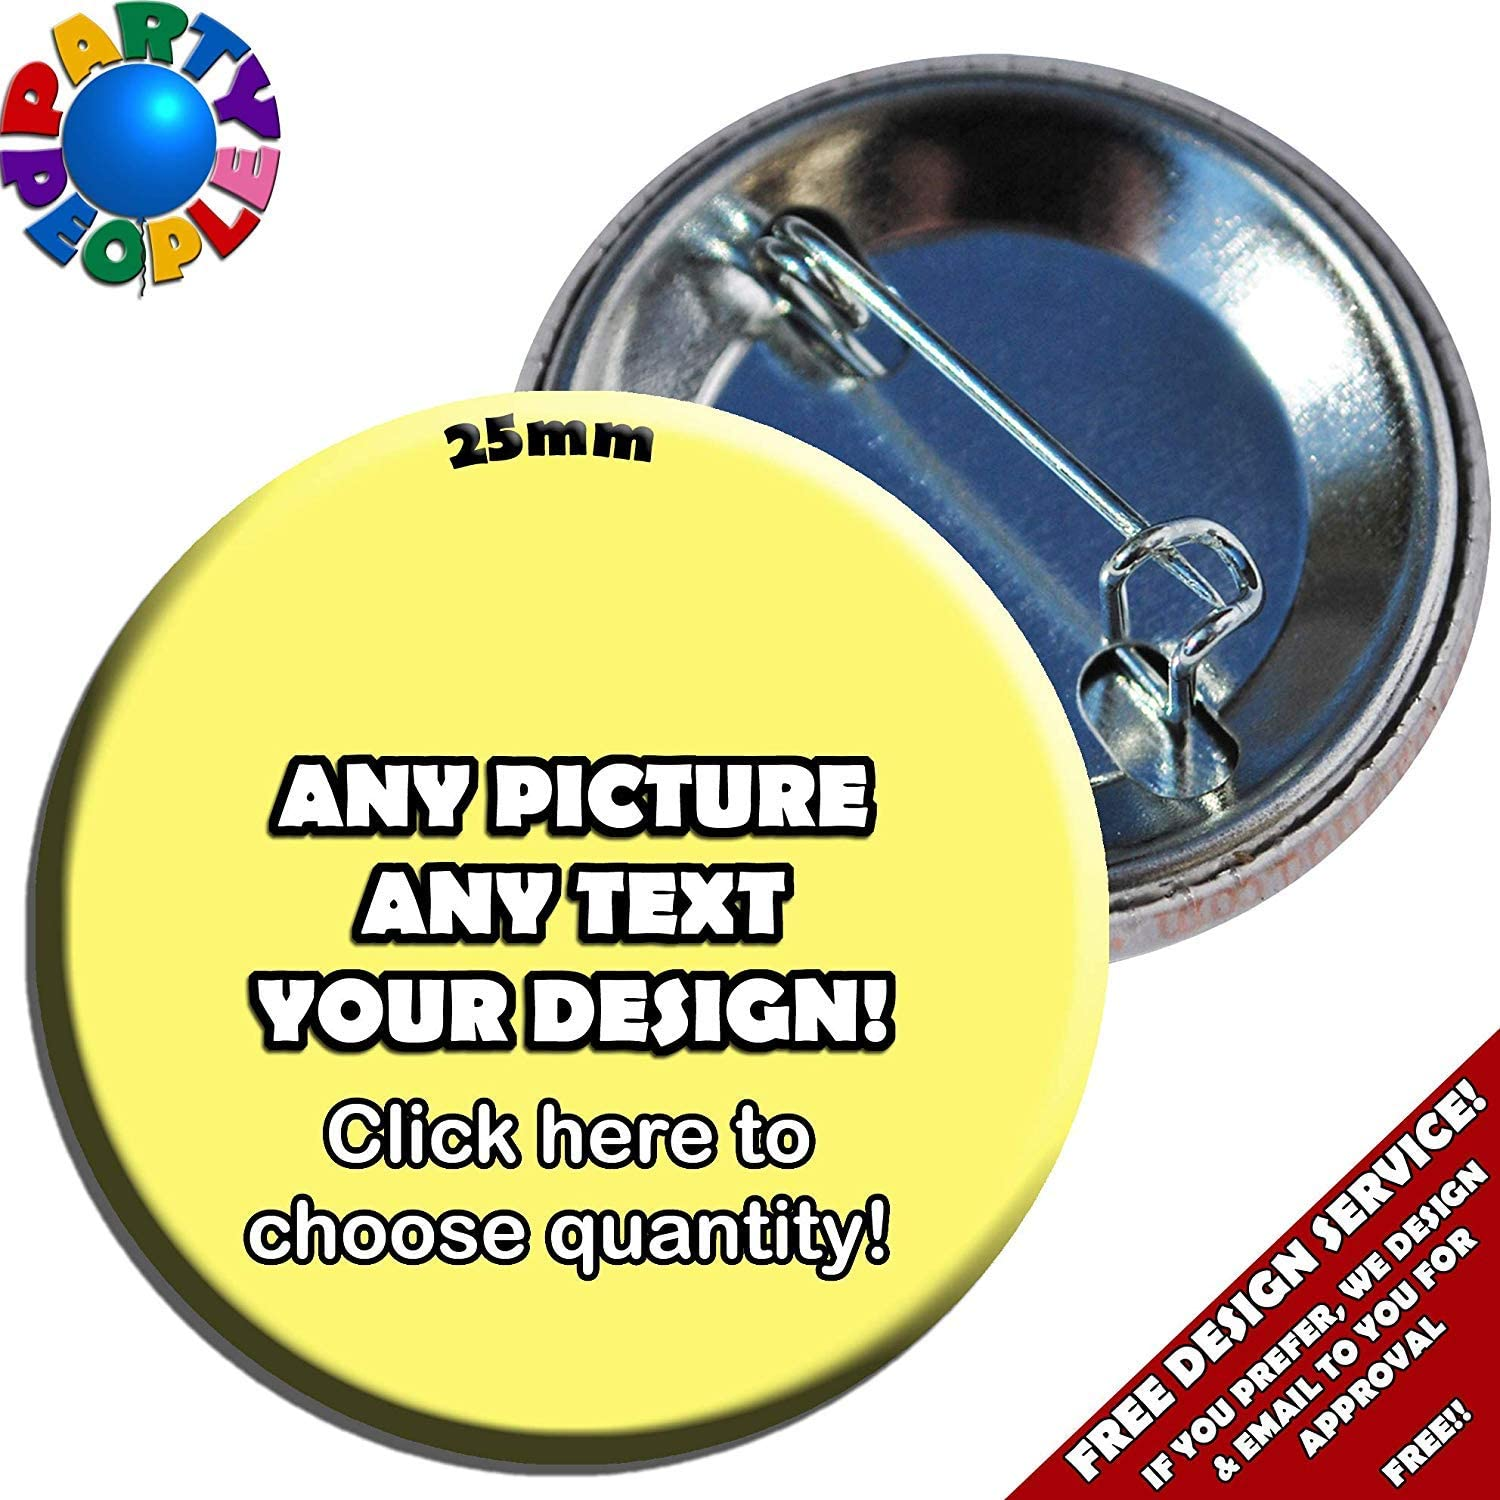 BRAND NEW 15 x 58mm CUSTOM BUTTON PIN BADGES PERSONALISED WITH YOU OWN DESIGN